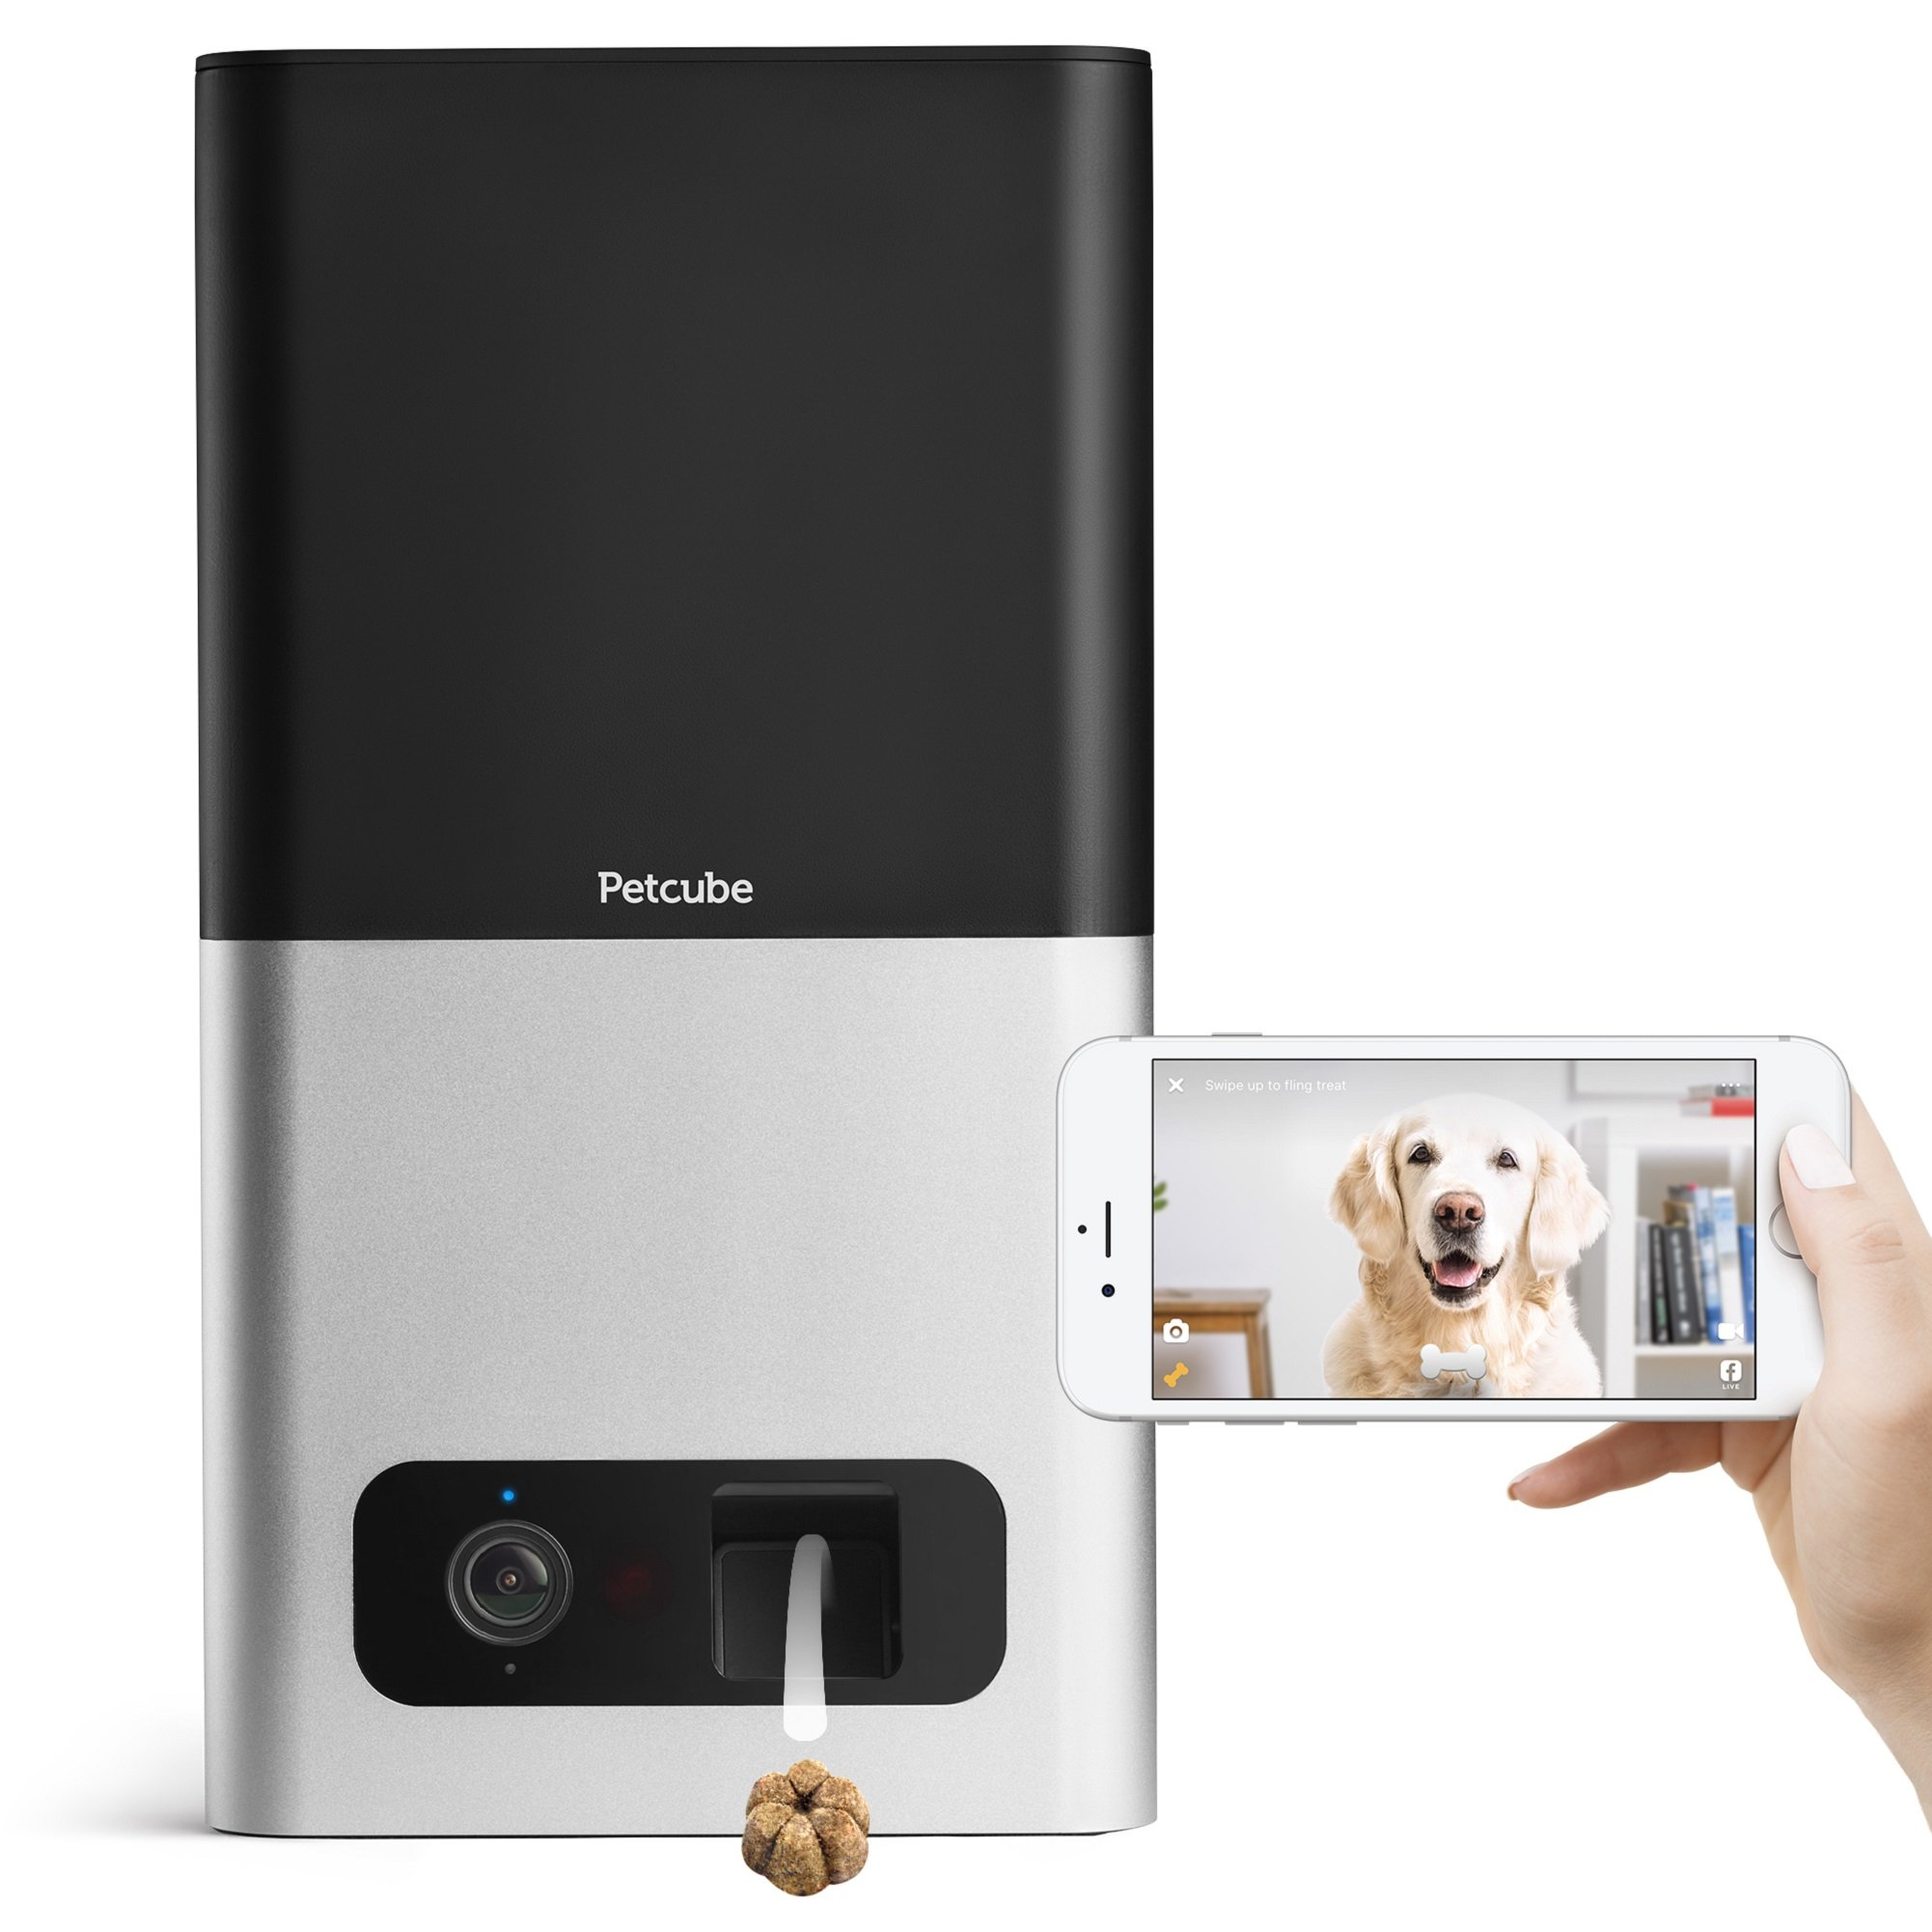 [2017 Item ] Petcube Bites Pet Camera with Treat Dispenser: HD 1080p Video Monitor, 2-Way Audio, Night Vision, Sound and Motion Alerts. For Dogs and Cats by Petcube